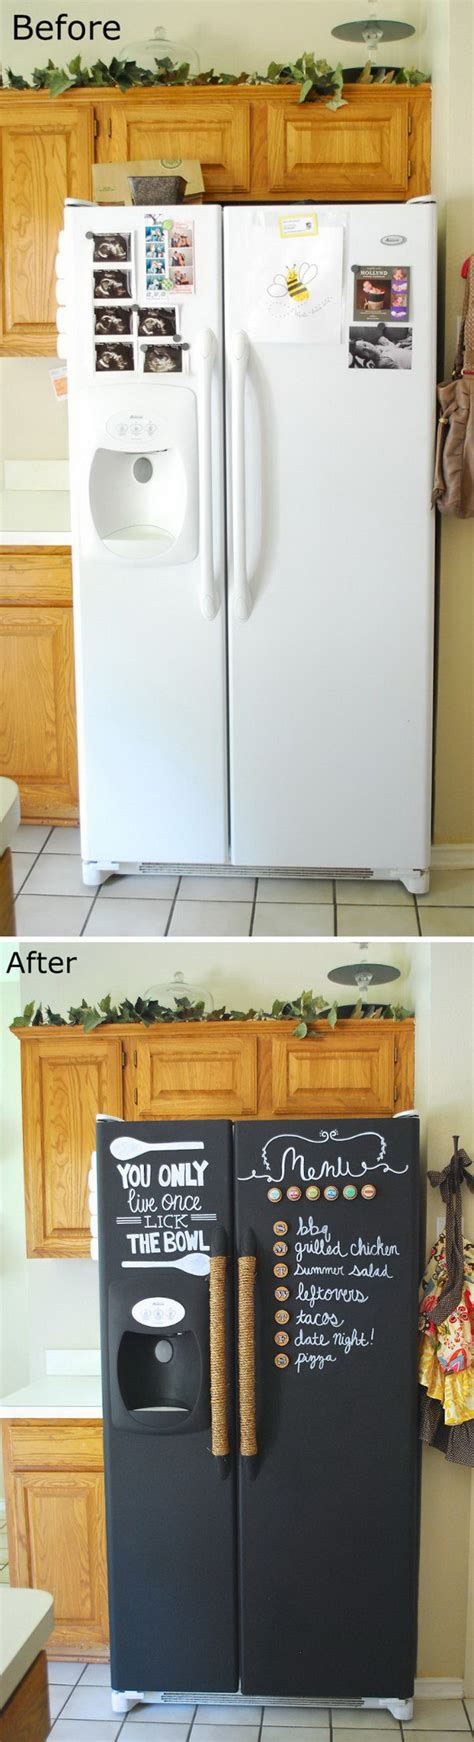 genius kitchen genius kitchen makeover ideas that would save you money